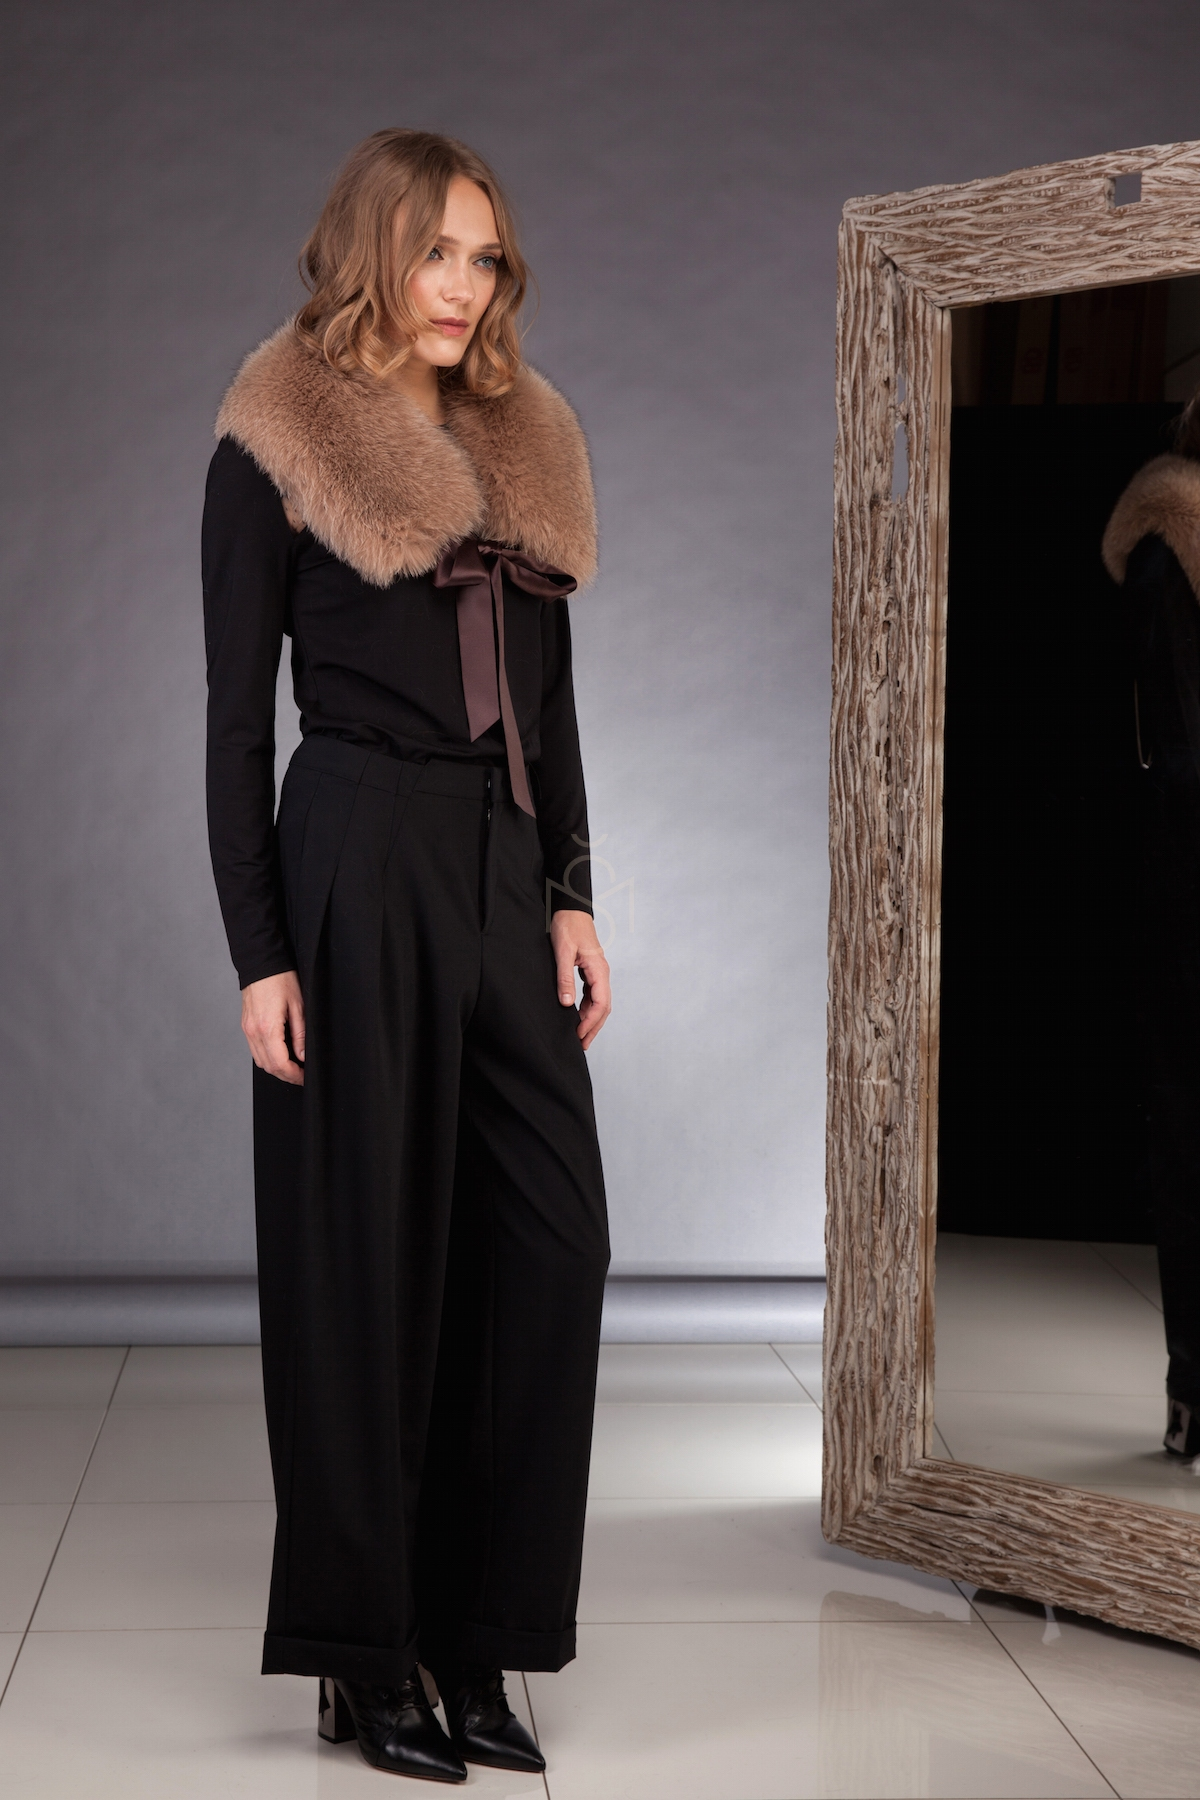 Fox fur collar brown made by SILTA MADA fur studio in Vilnius